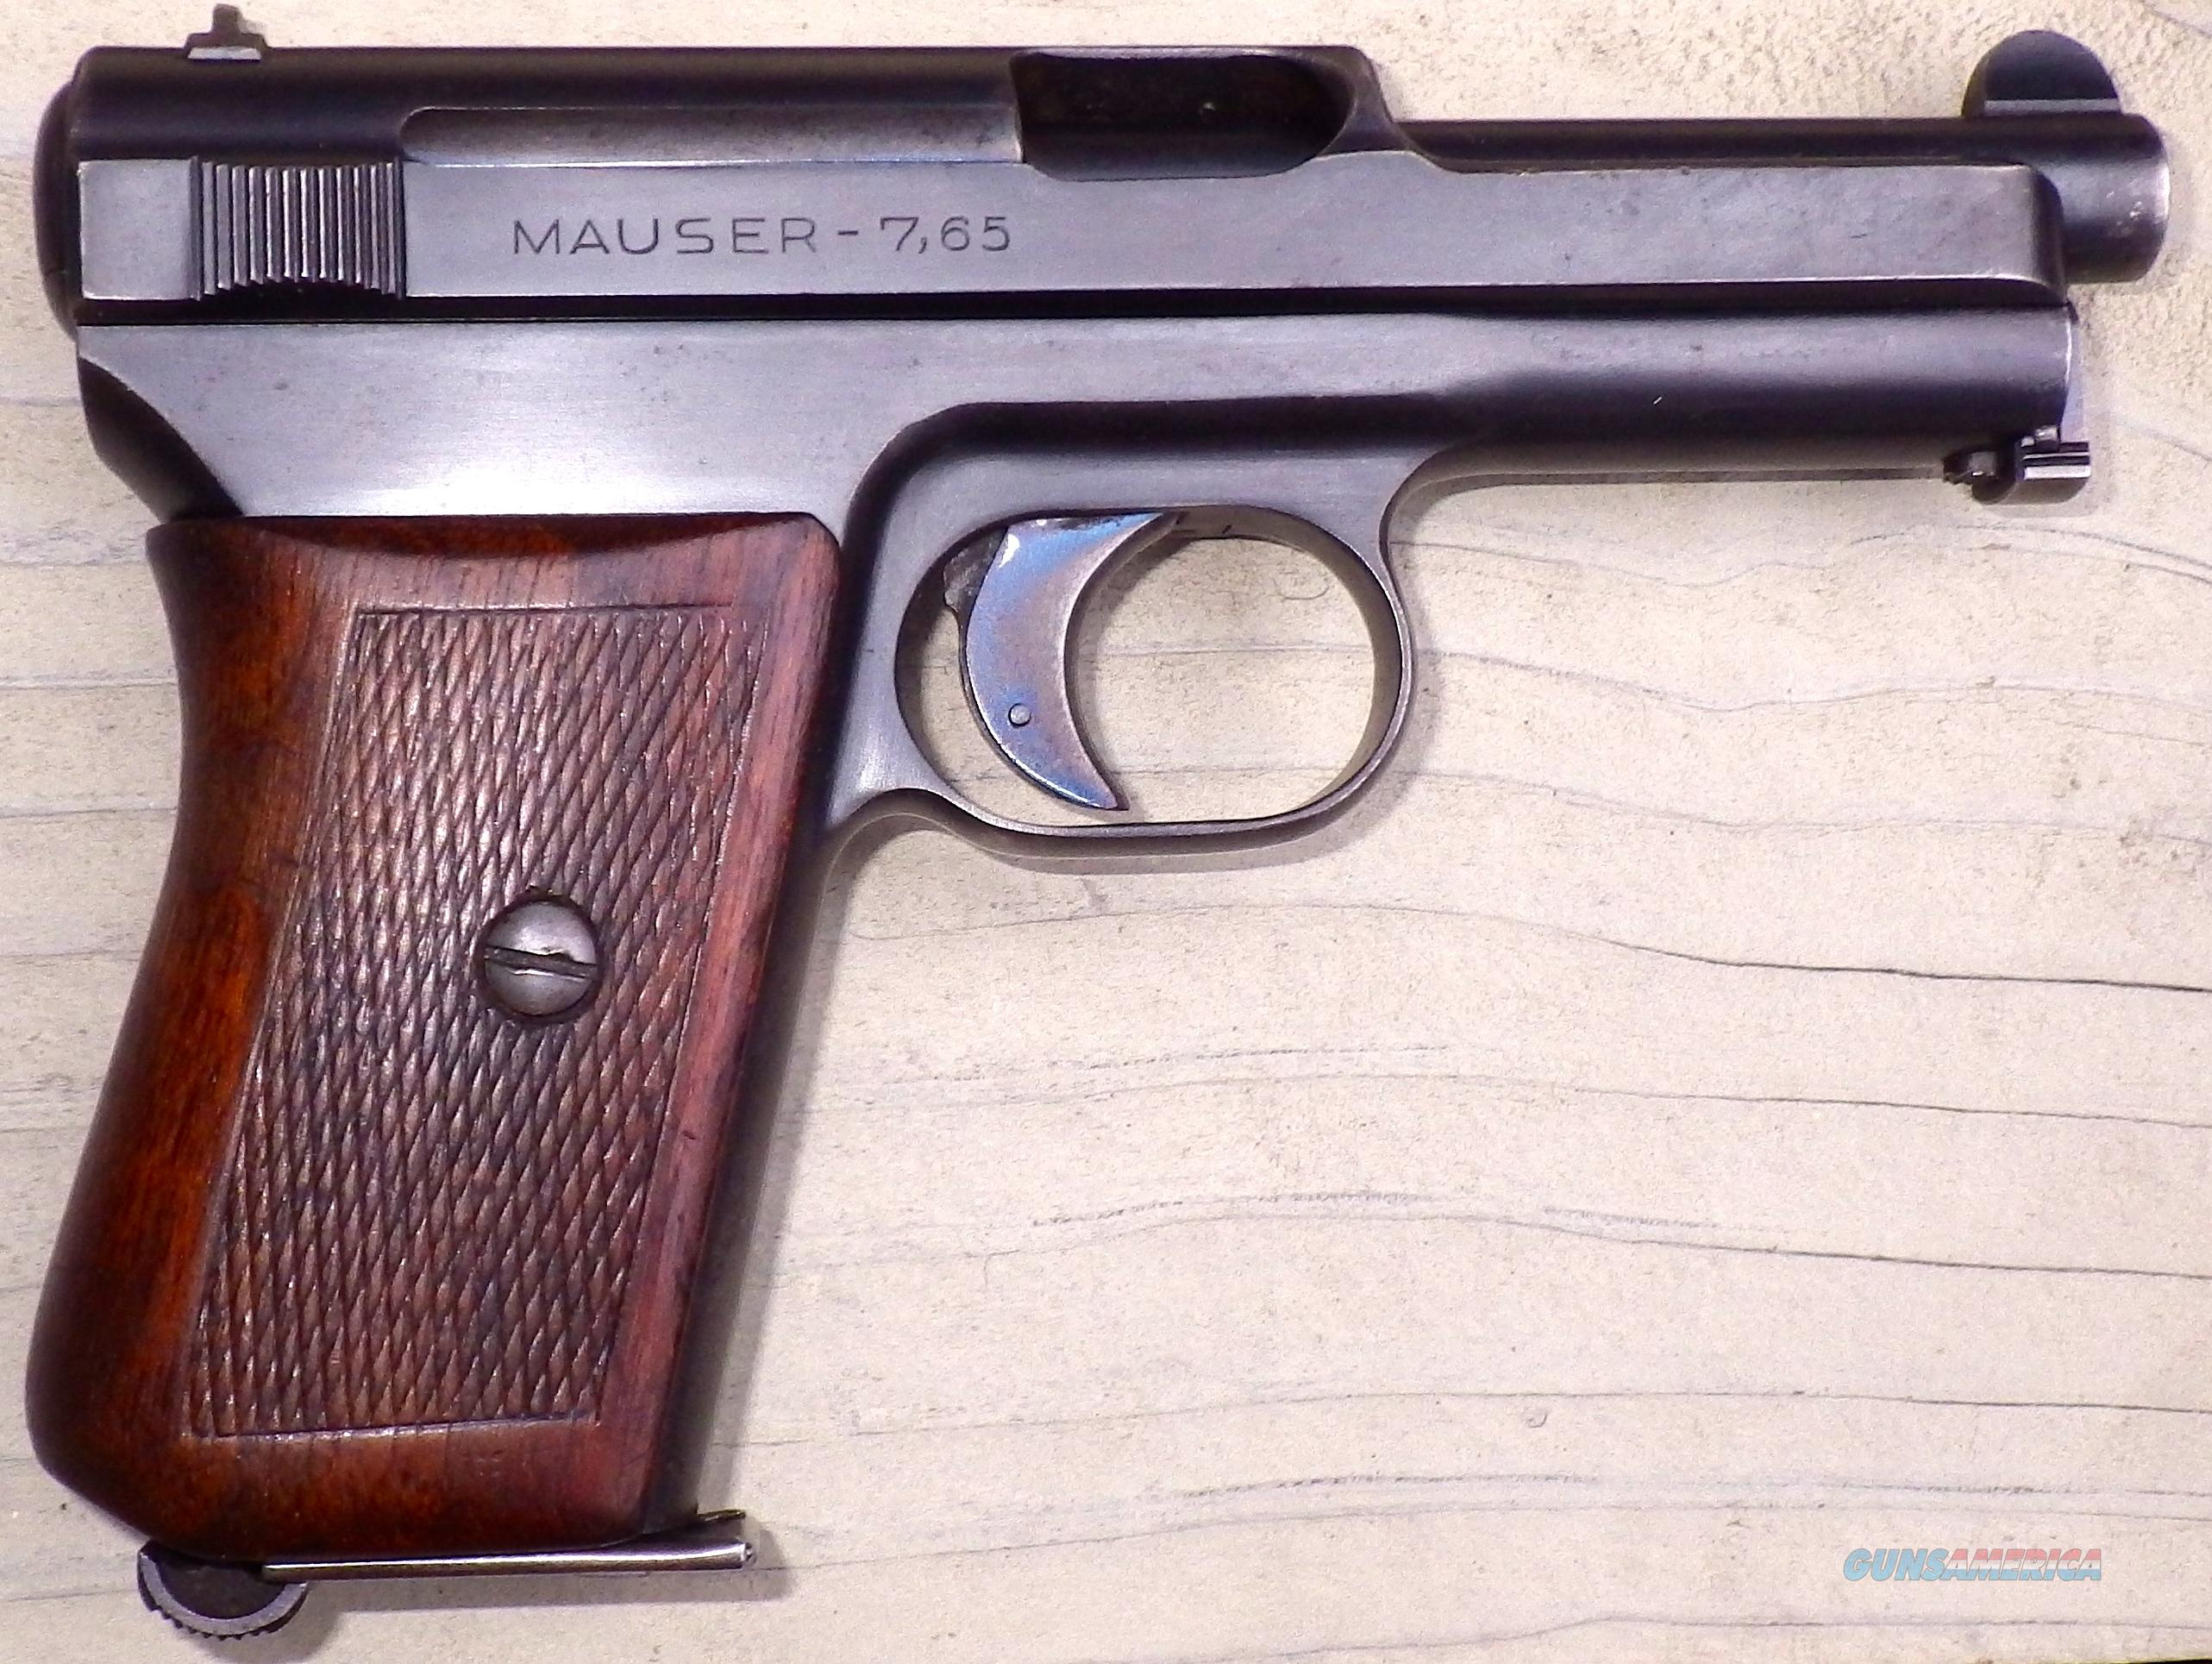 Mauser Model 1914 7.65, wood, 85% condition  Guns > Pistols > Mauser Pistols